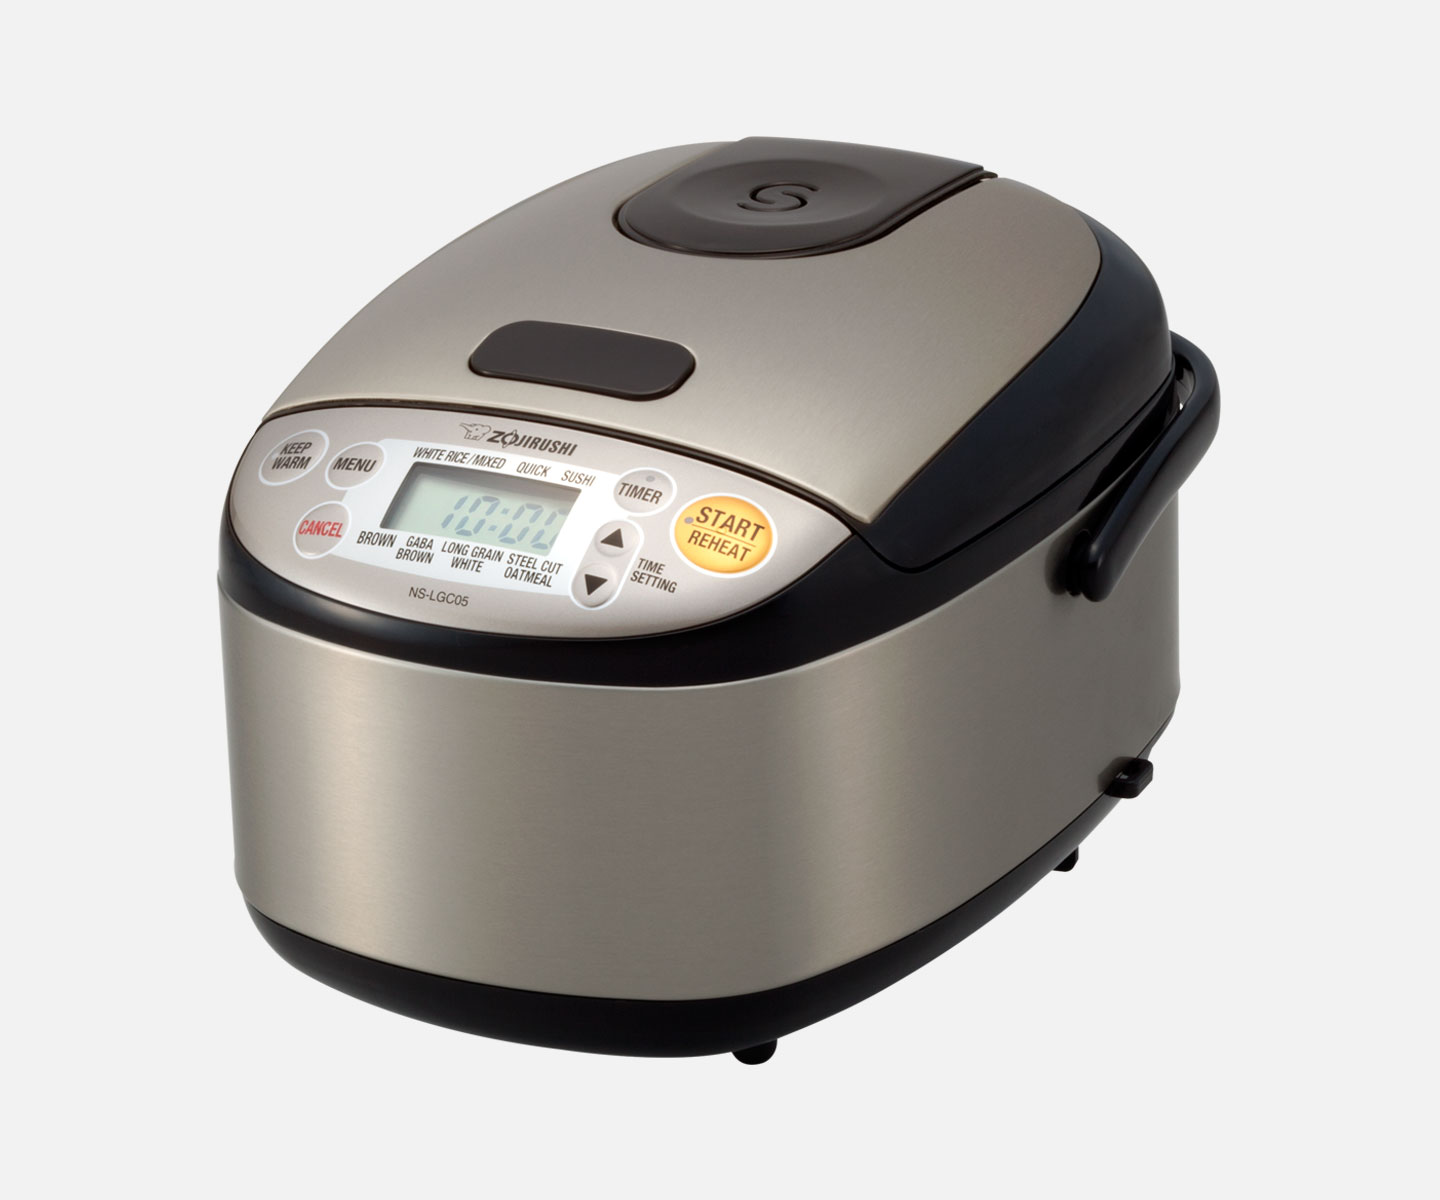 6b0c5af9088 The 3-cup Micom Rice Cooker   Warmer features an expanded menu with steel  cut oatmeal and GABA brown rice settings for more healthy options.